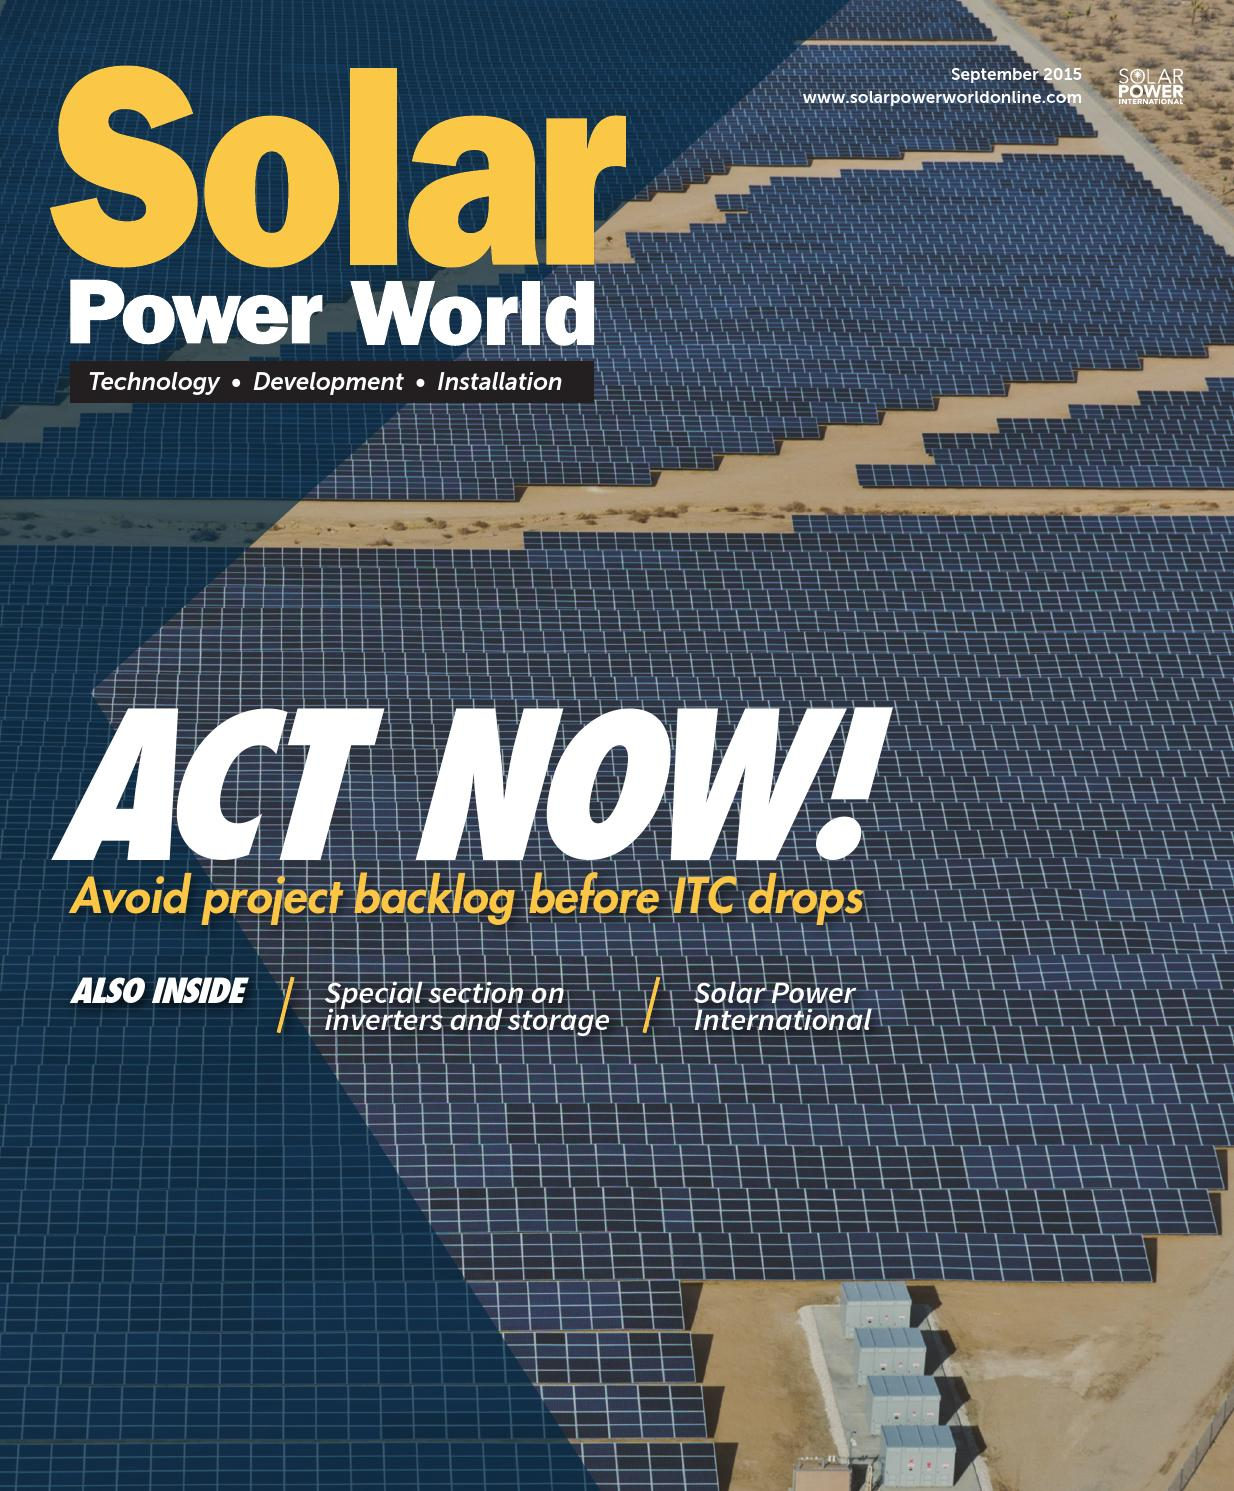 Solar Power World September 2015 By Wtwh Media Llc Issuu Panel With Corrugated Thin Film Cells On Wiring Panels In